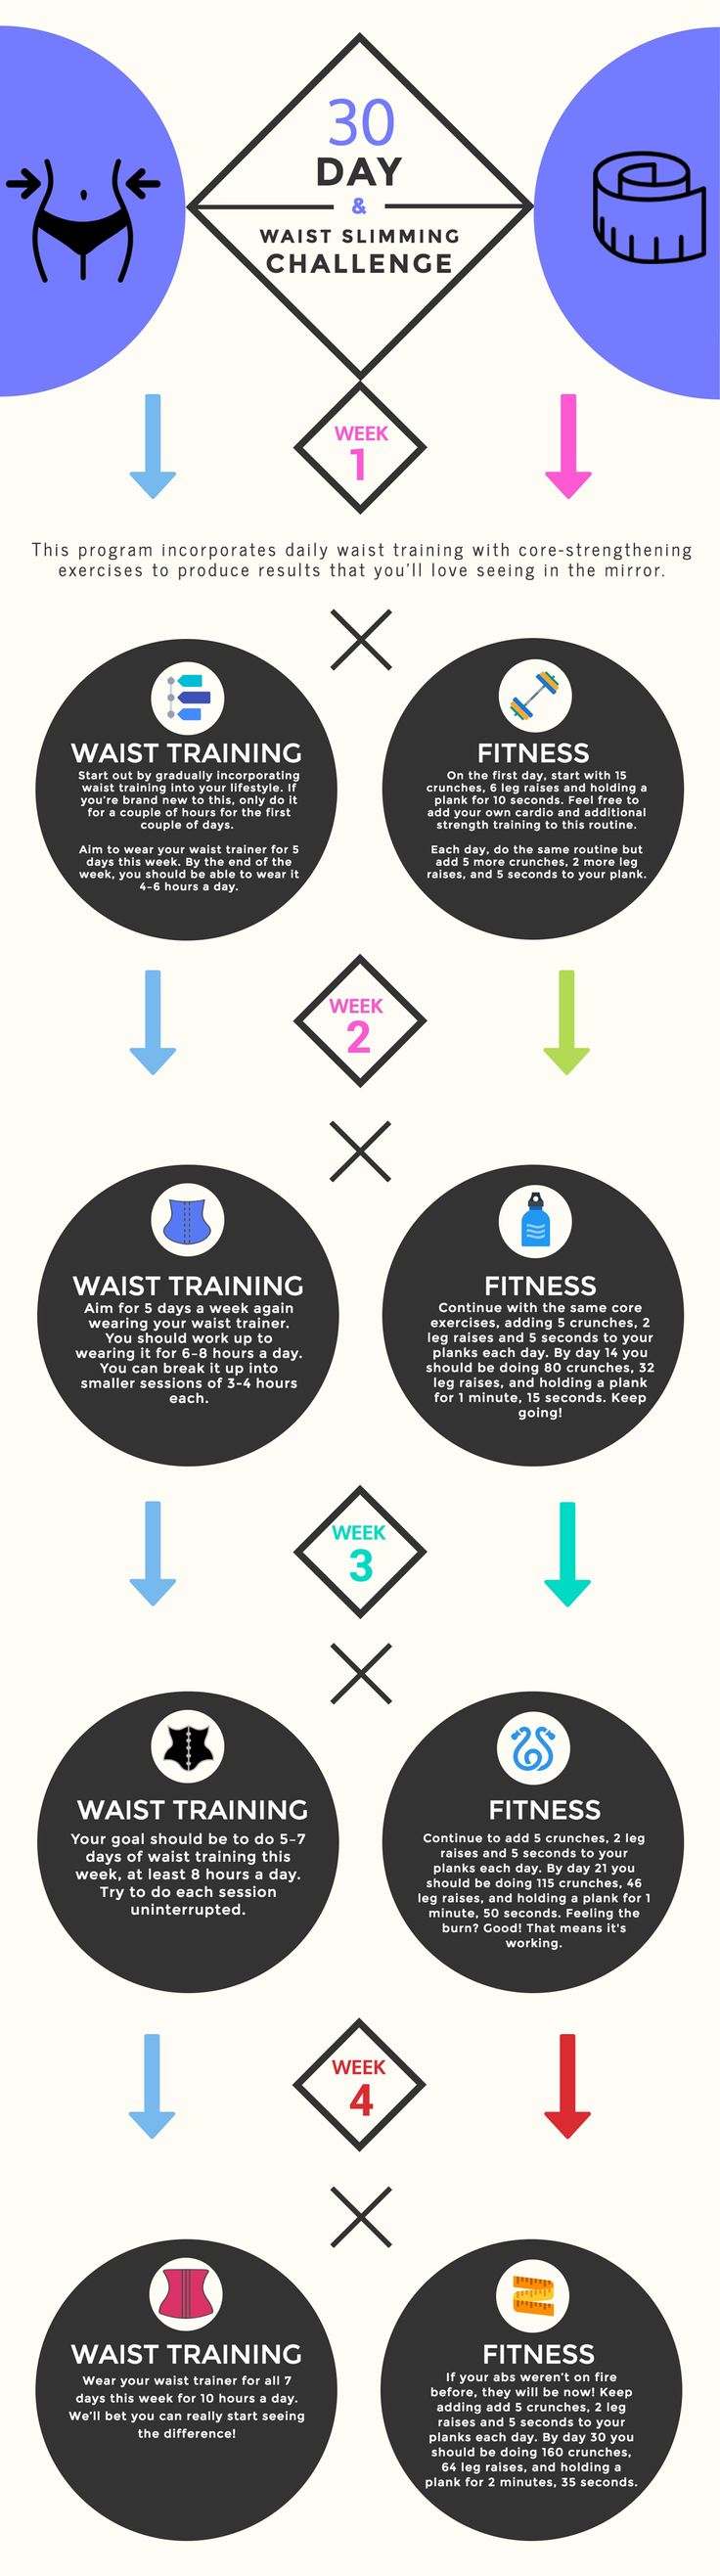 We have it all planned out, now you just have to start #waisttraining!